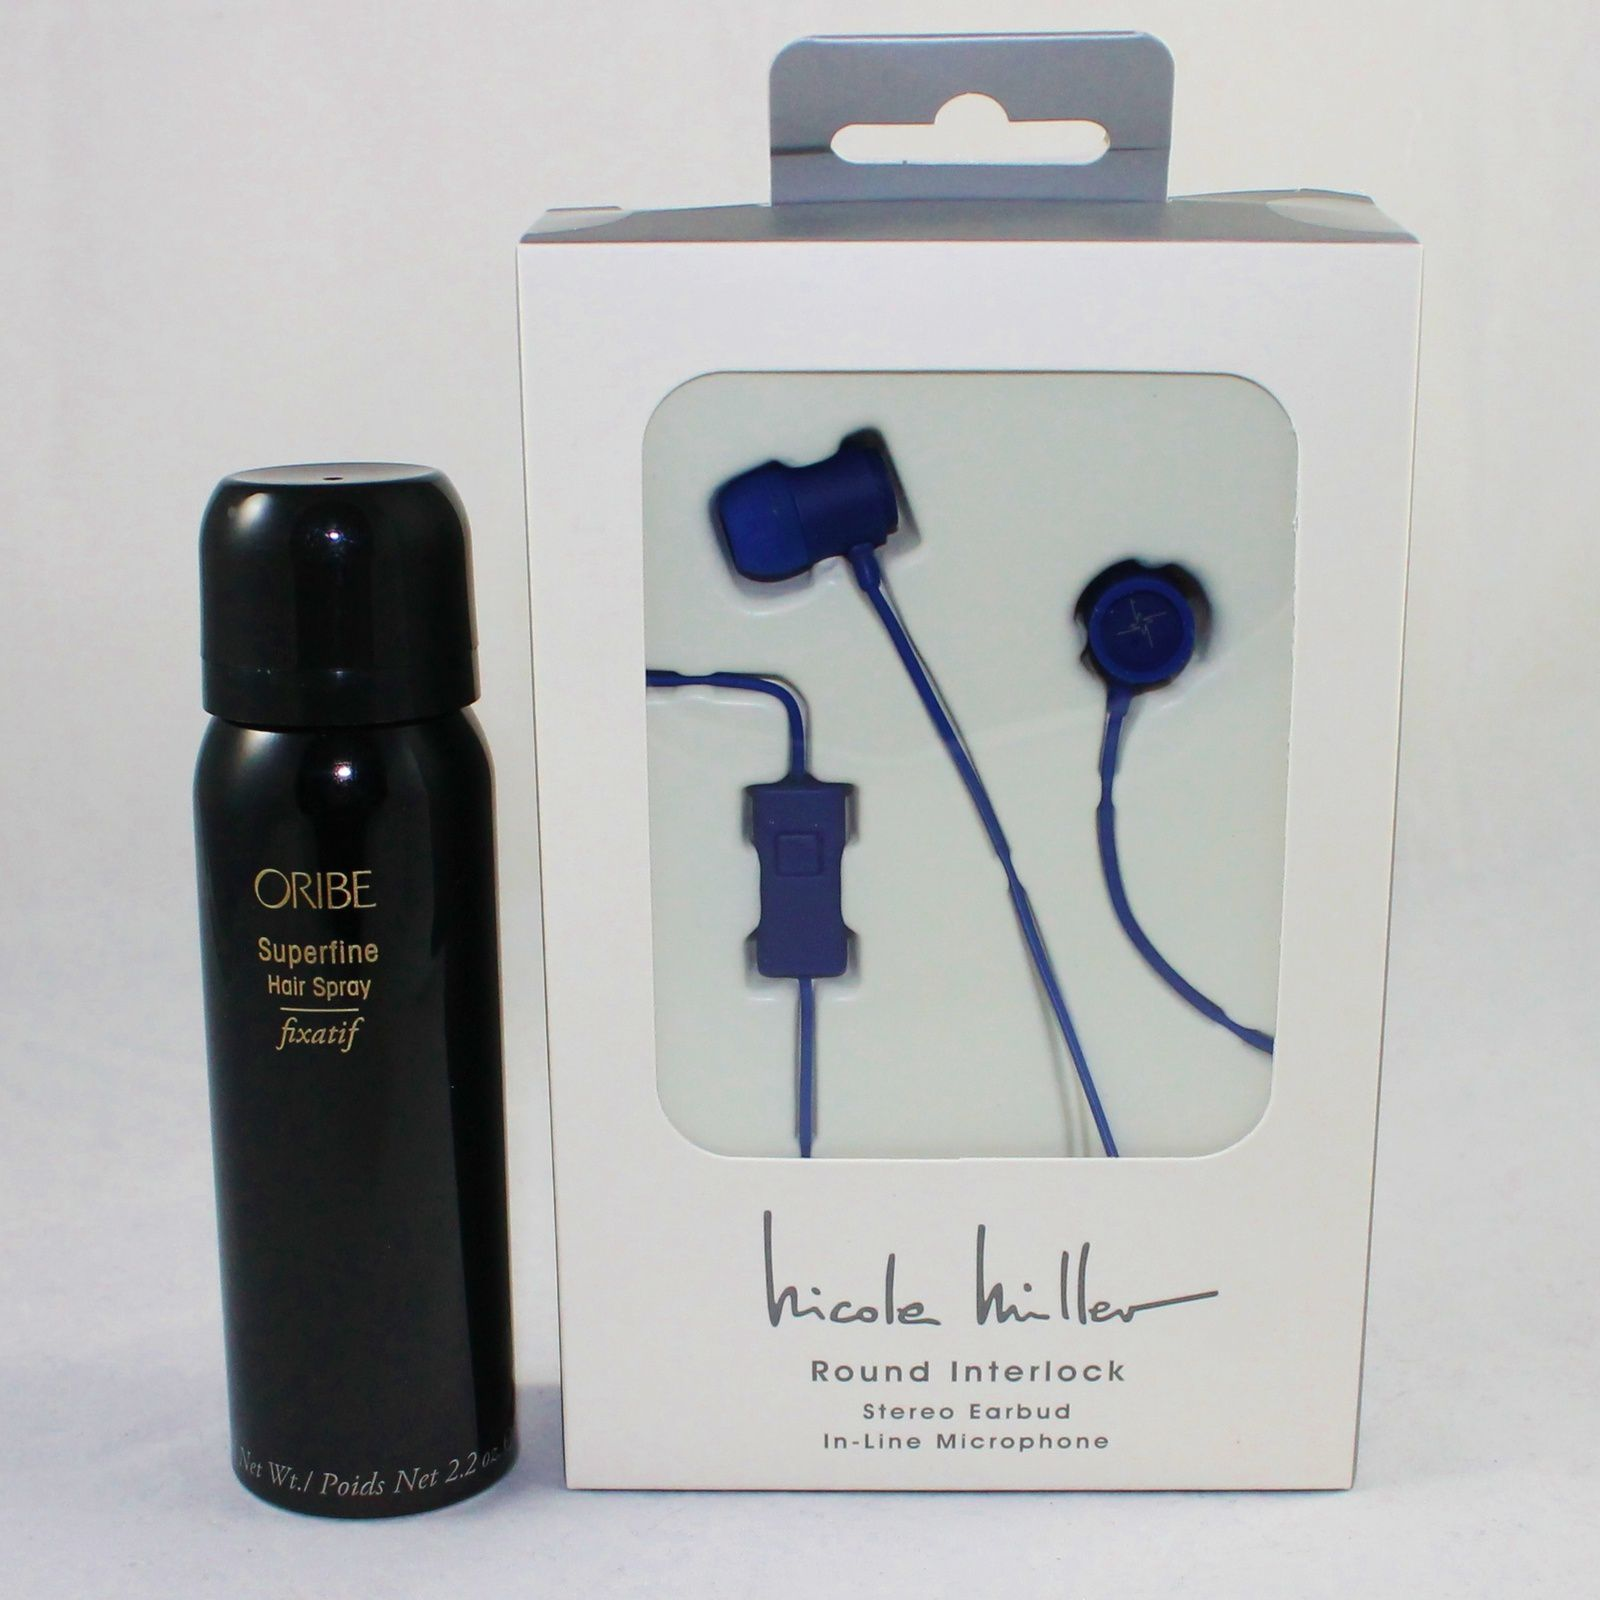 Oribe Superfine Purse Size Hair Spray & Nicole Miller Stereo Earbuds